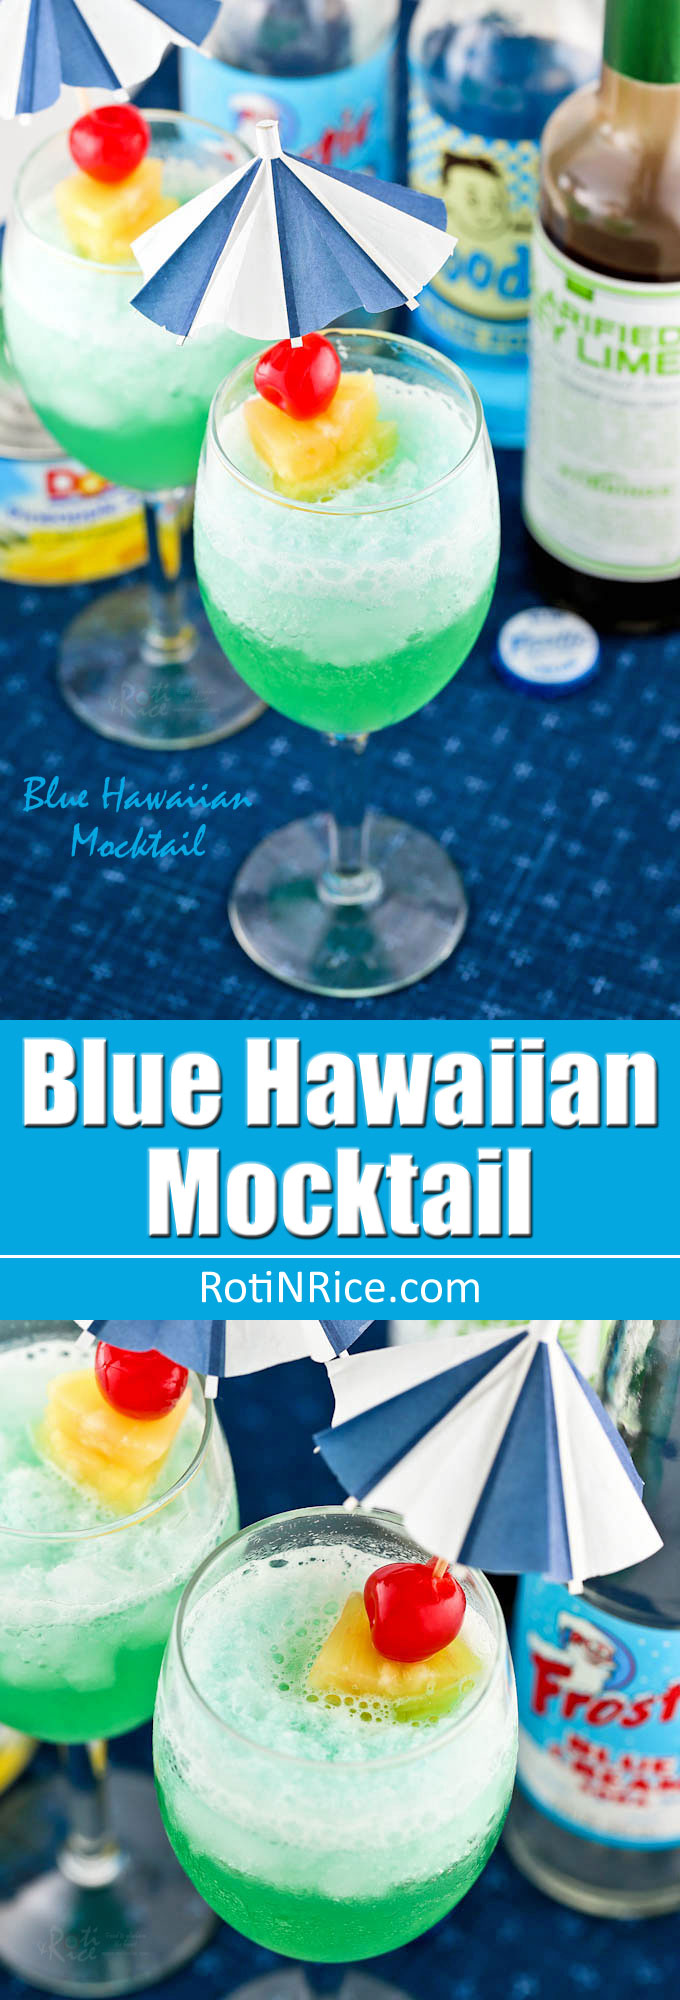 This cool Blue Hawaiian Mocktail is a fun drink to prepare for any occasion. Only 3 ingredients and some crushed ice are needed. | RotiNRice.com